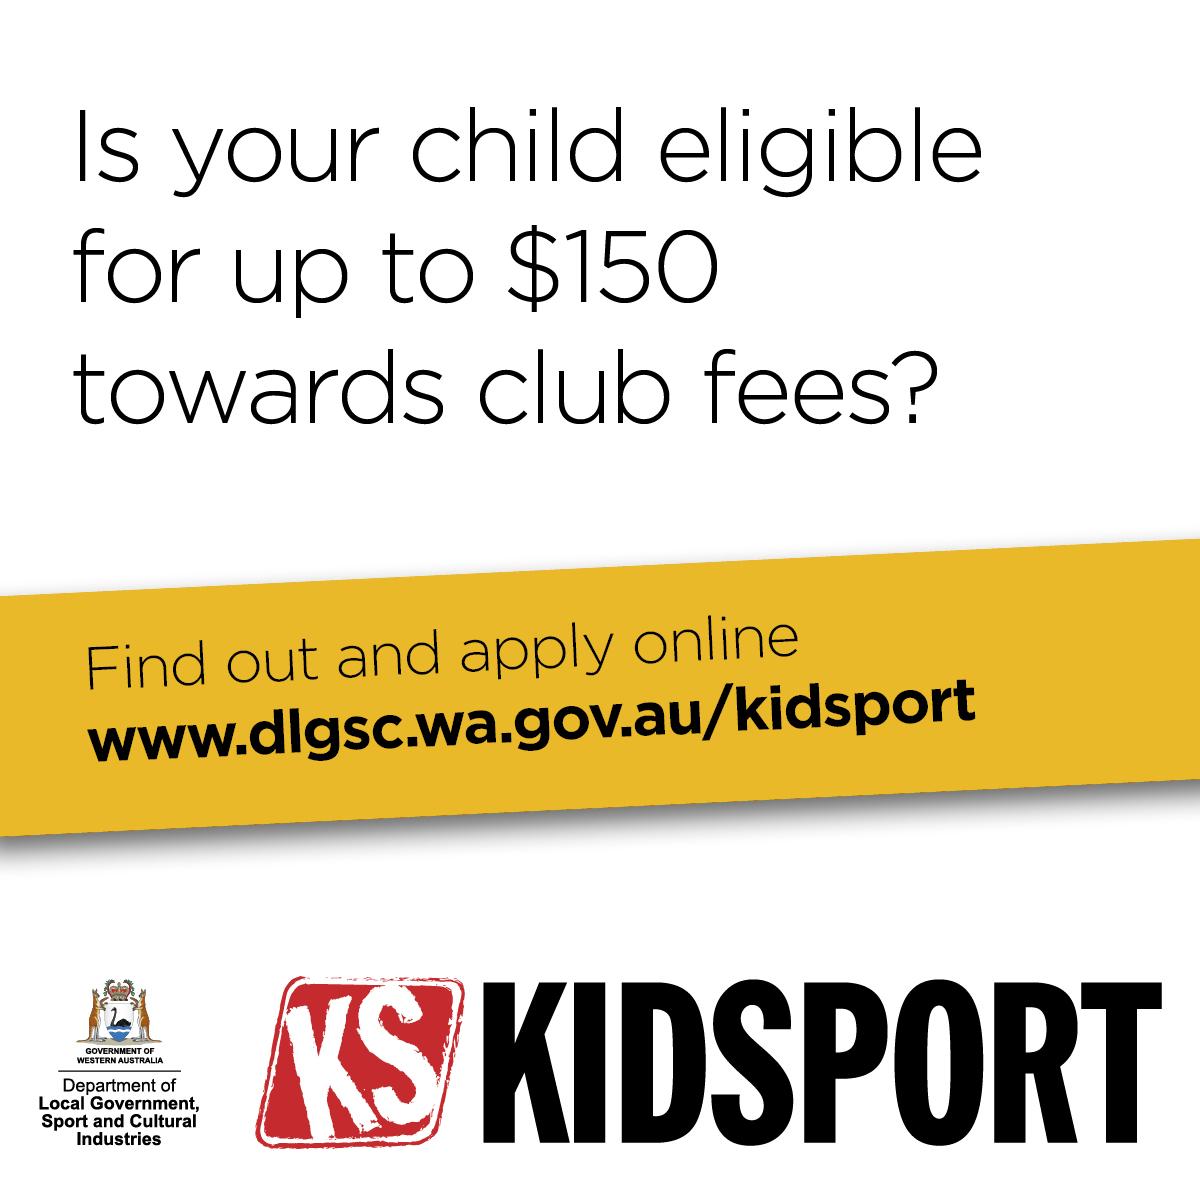 KidSport website image Is Your Child Eligible words only